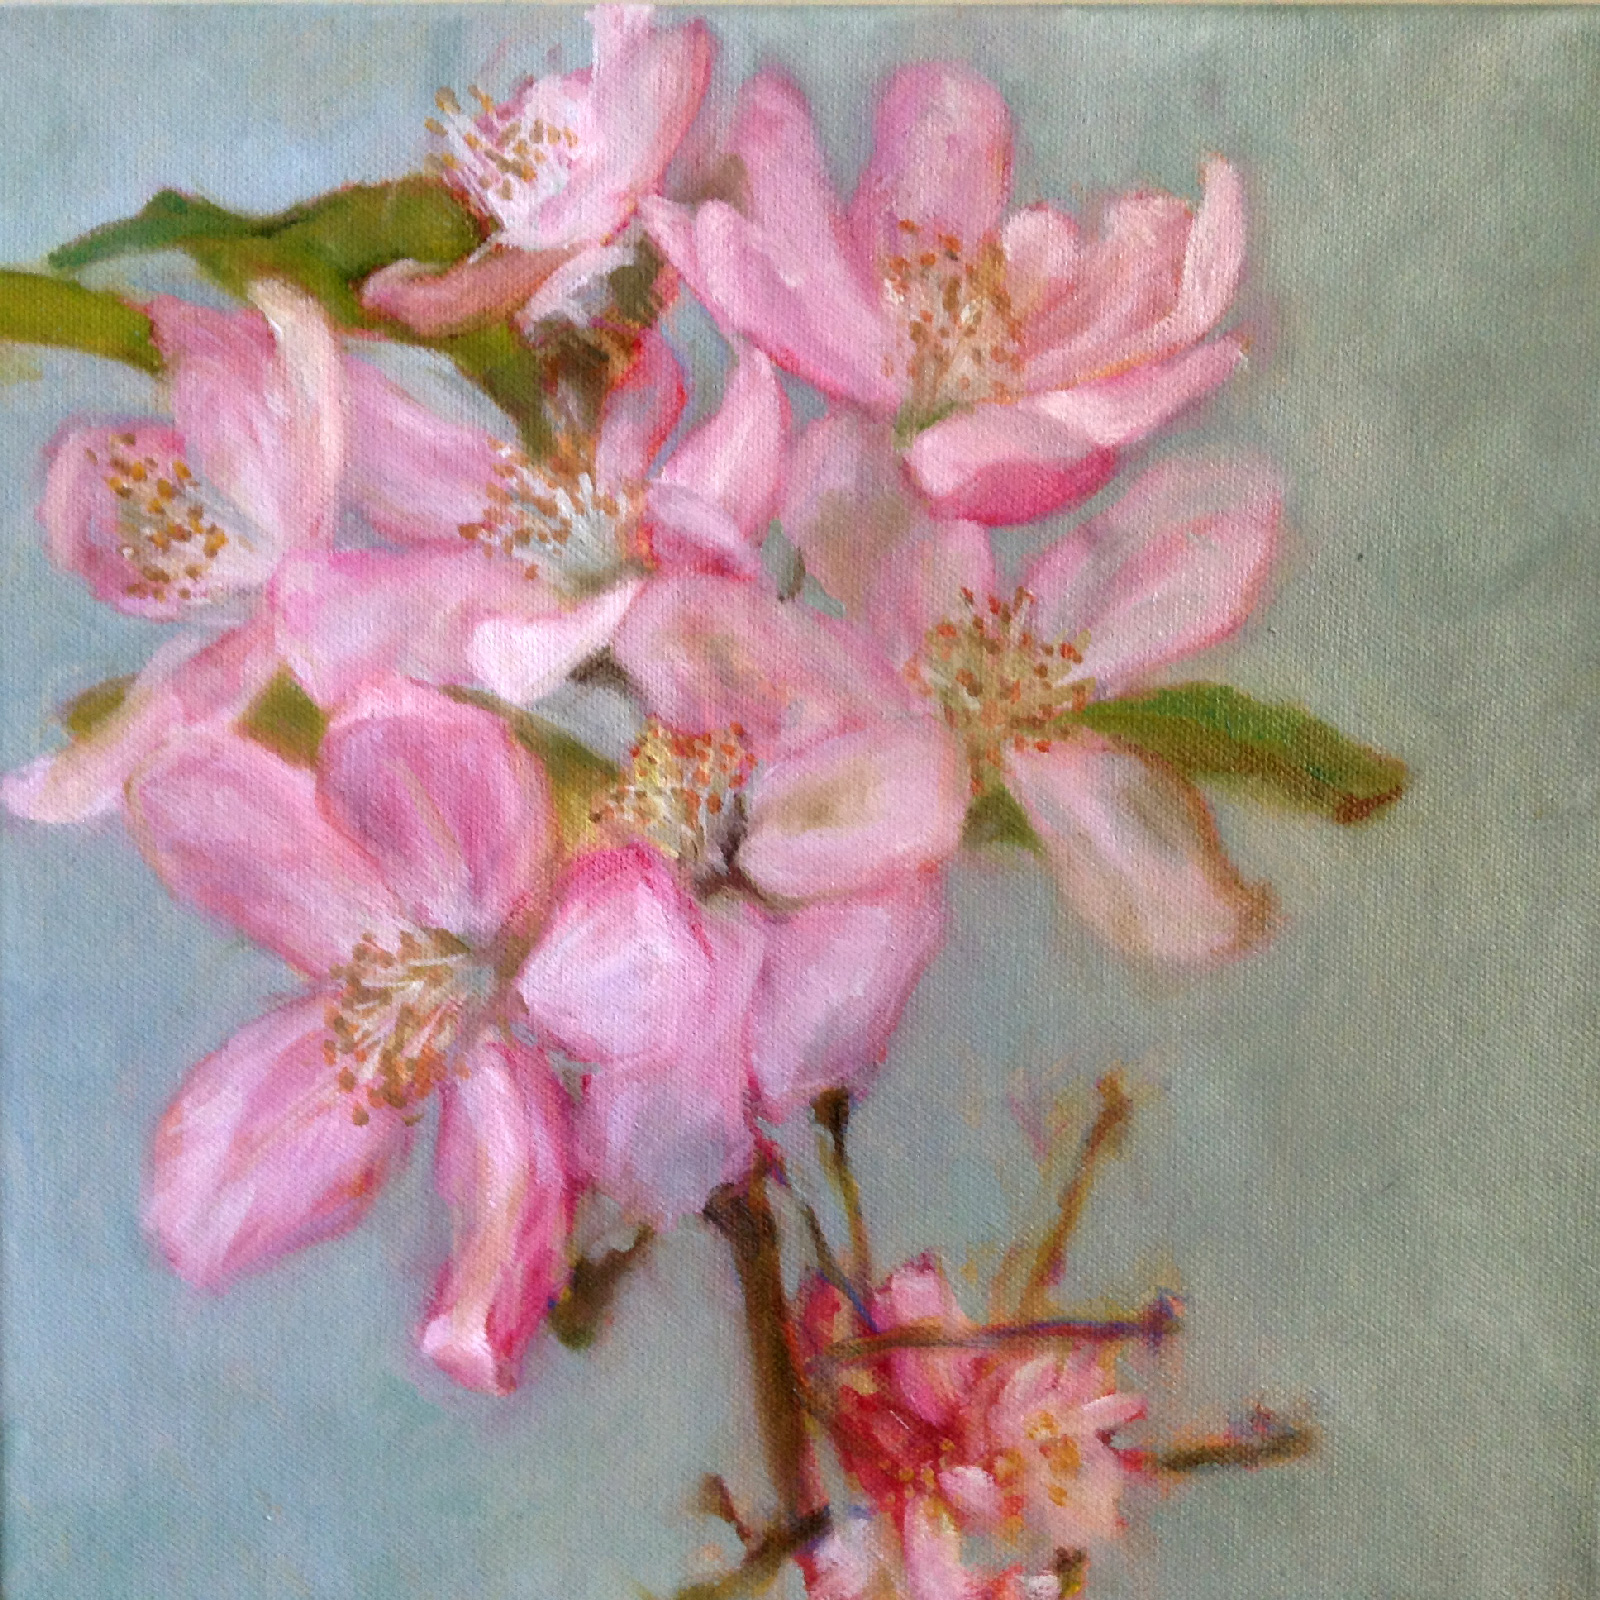 Blossoms   Oil on canvas  12 x 12 inch  Framed